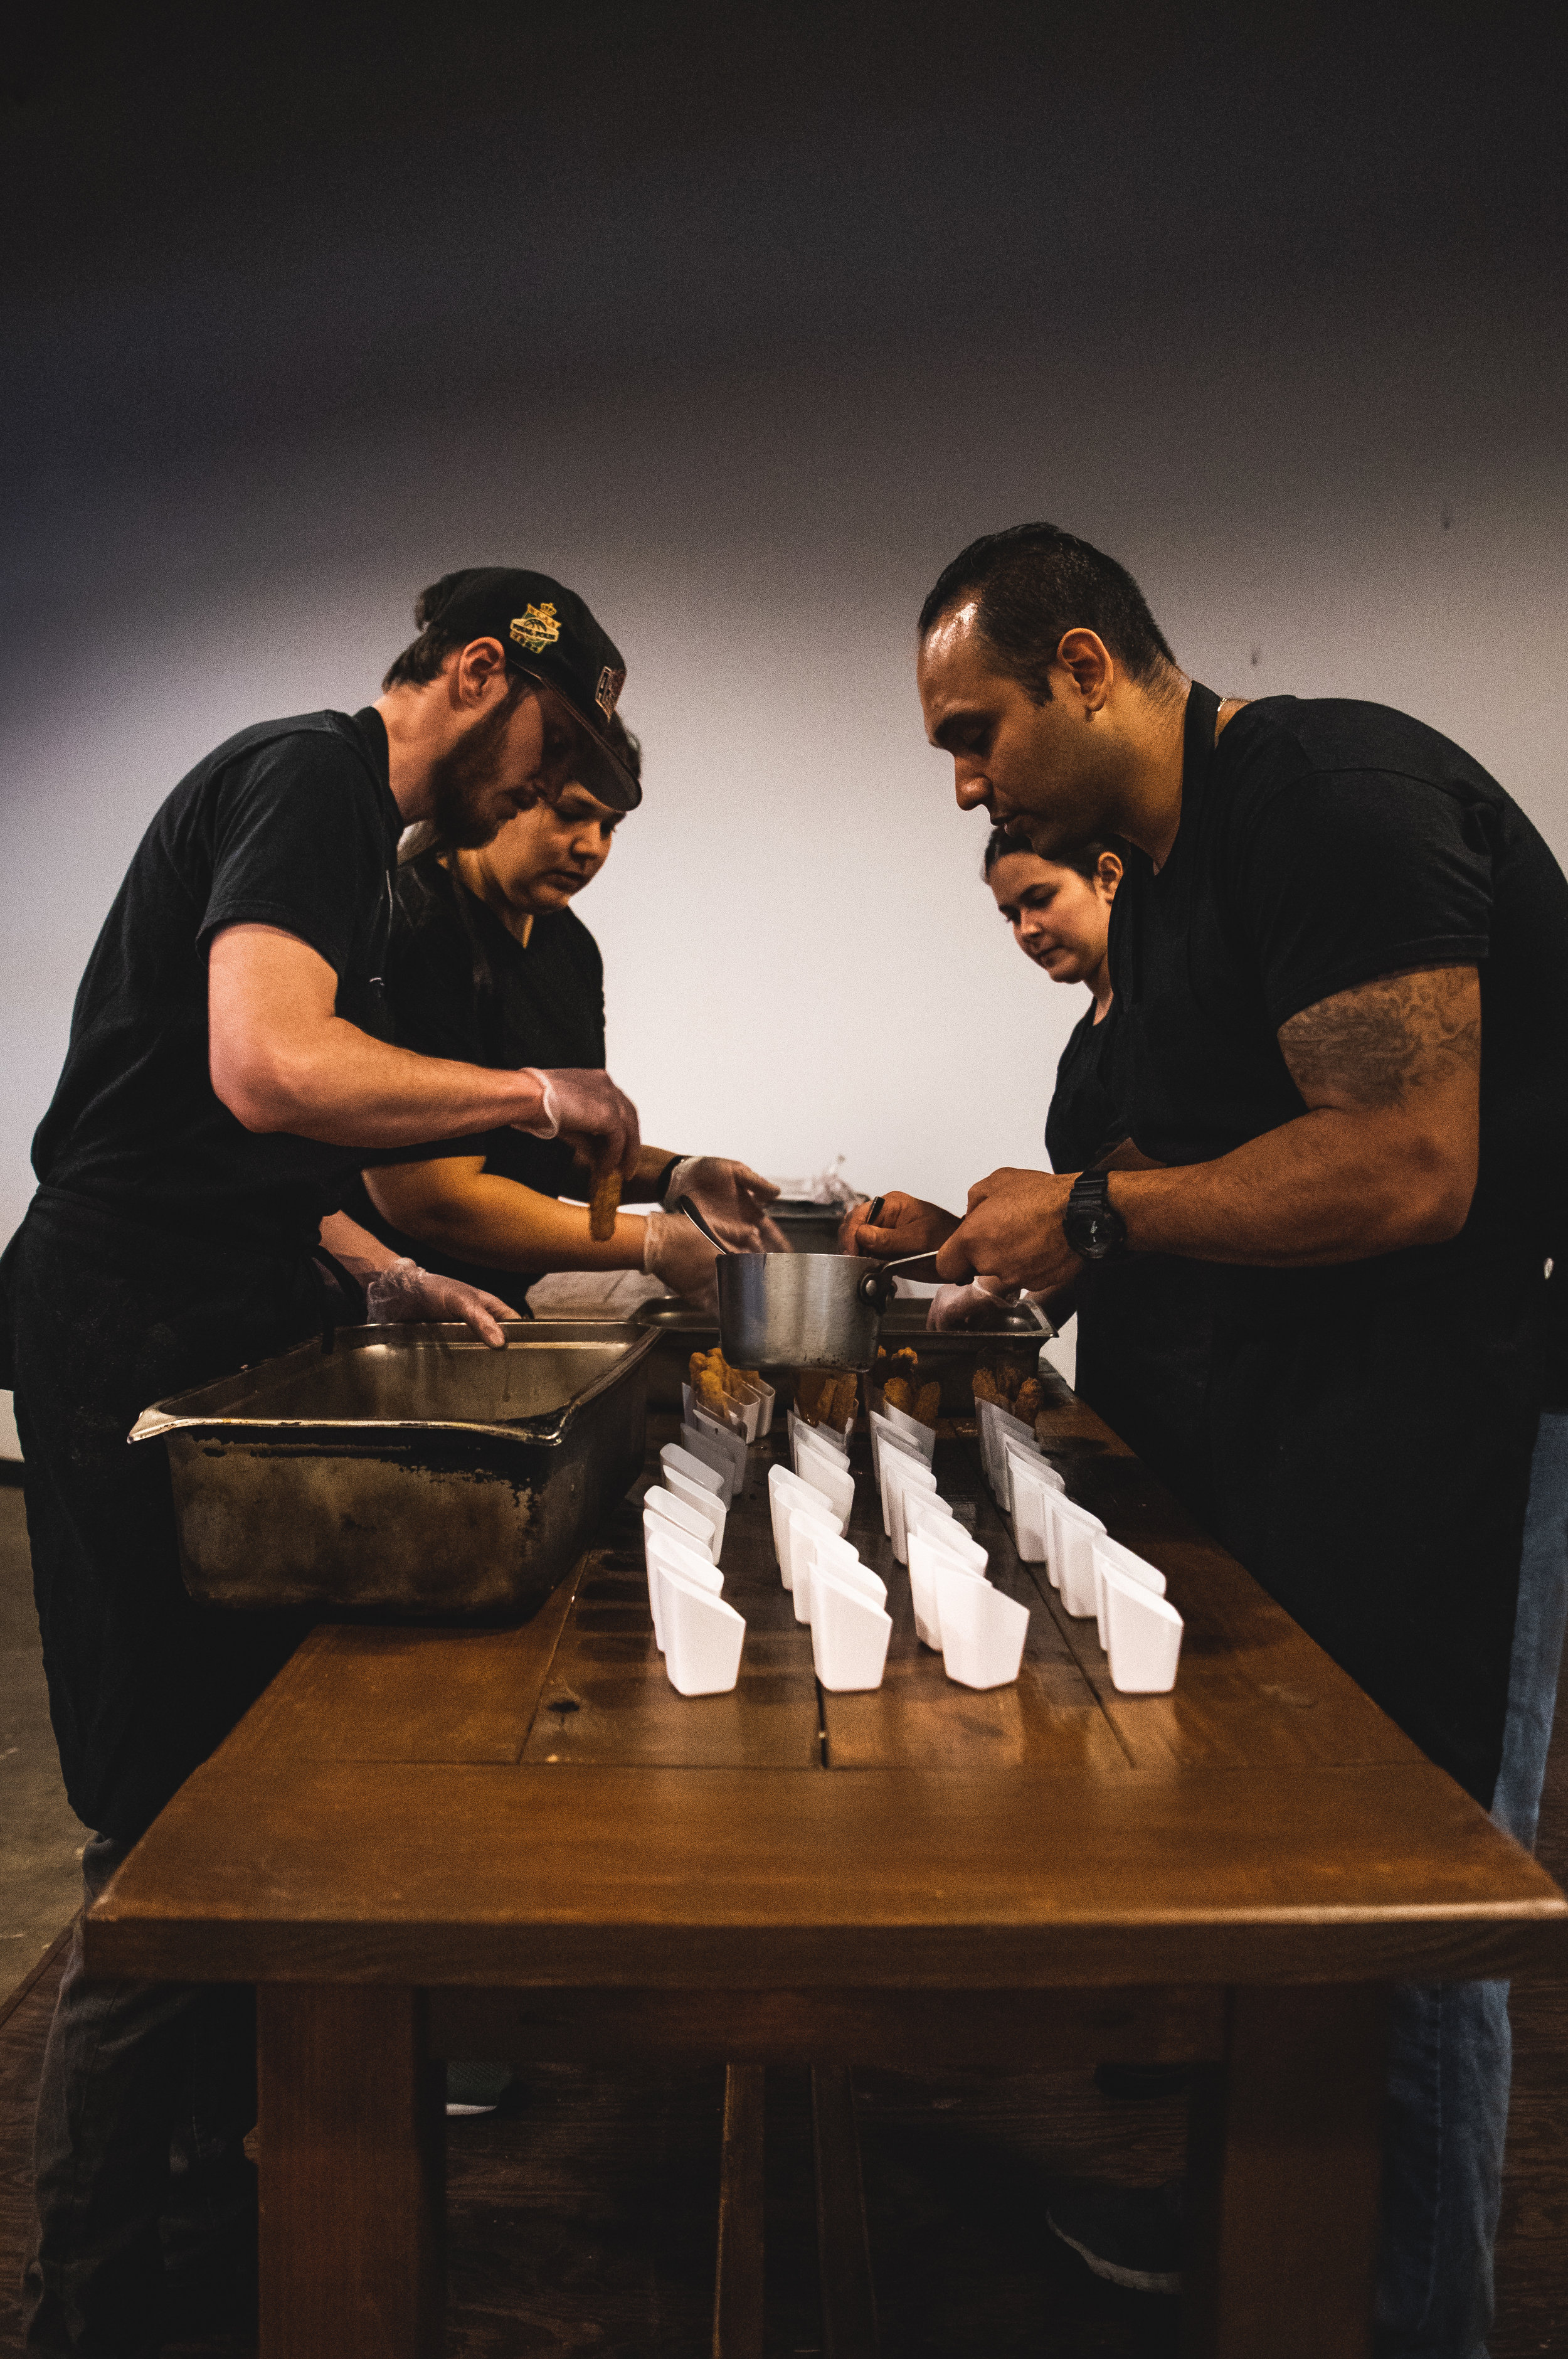 The kitchen staff working to portion the sauces in the final dessert course. Photo by Garrett Smith.